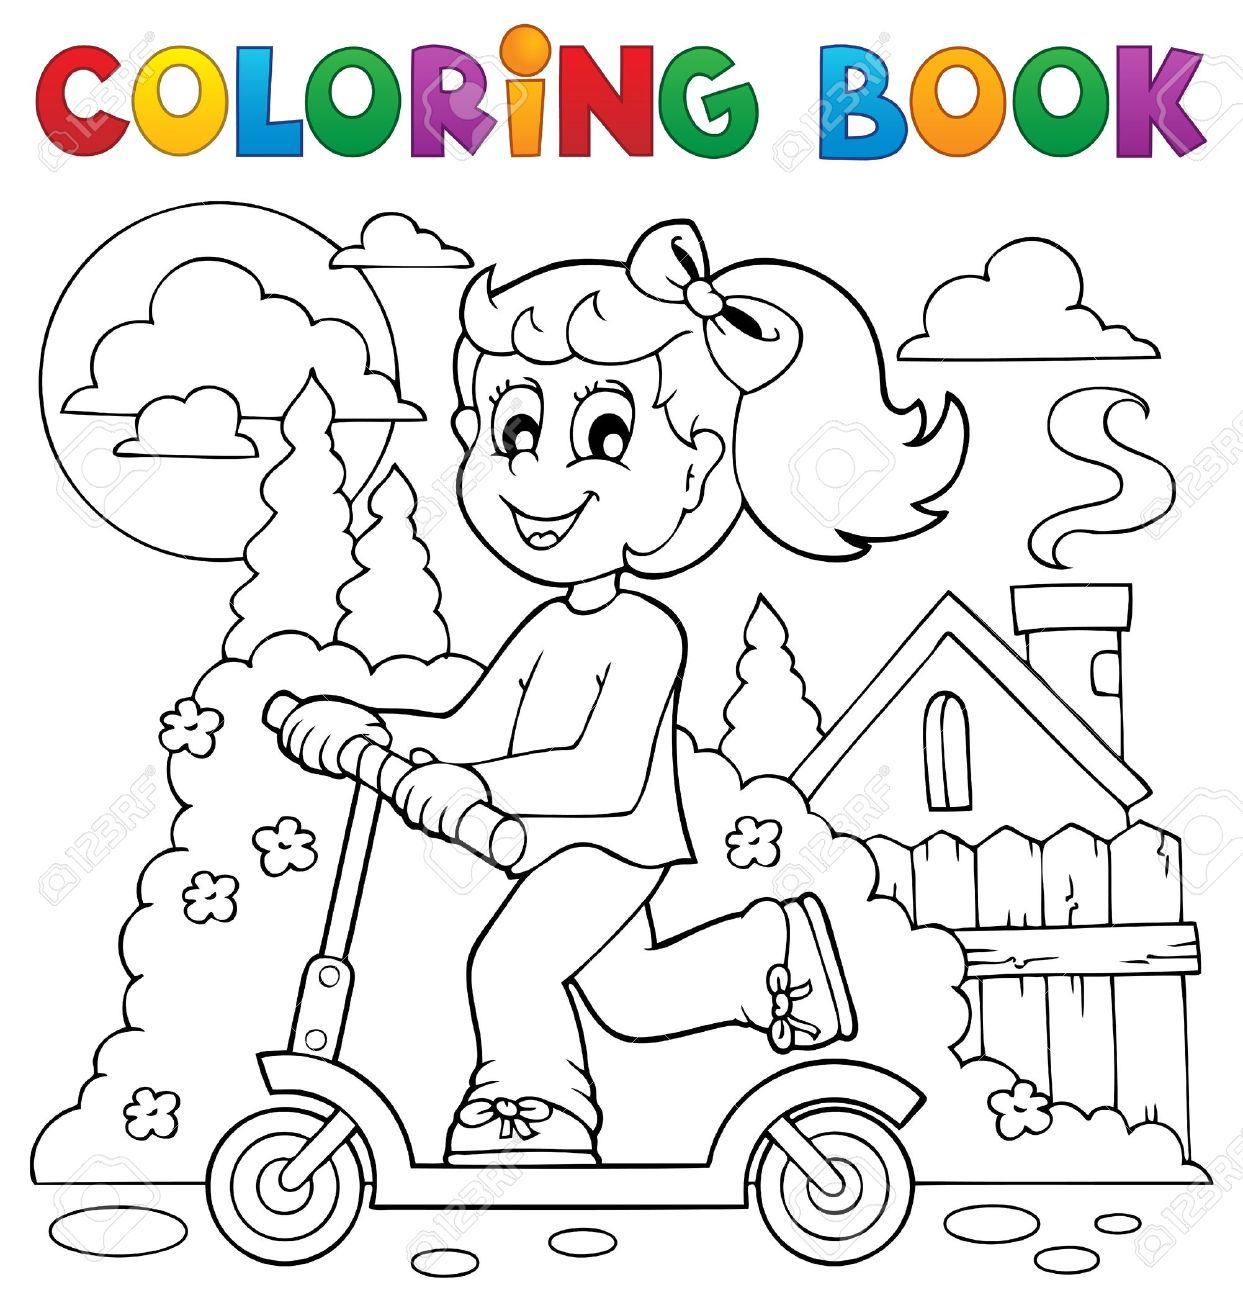 Coloring Book Kids Play Theme Royalty Free Cliparts, Vectors, And ...